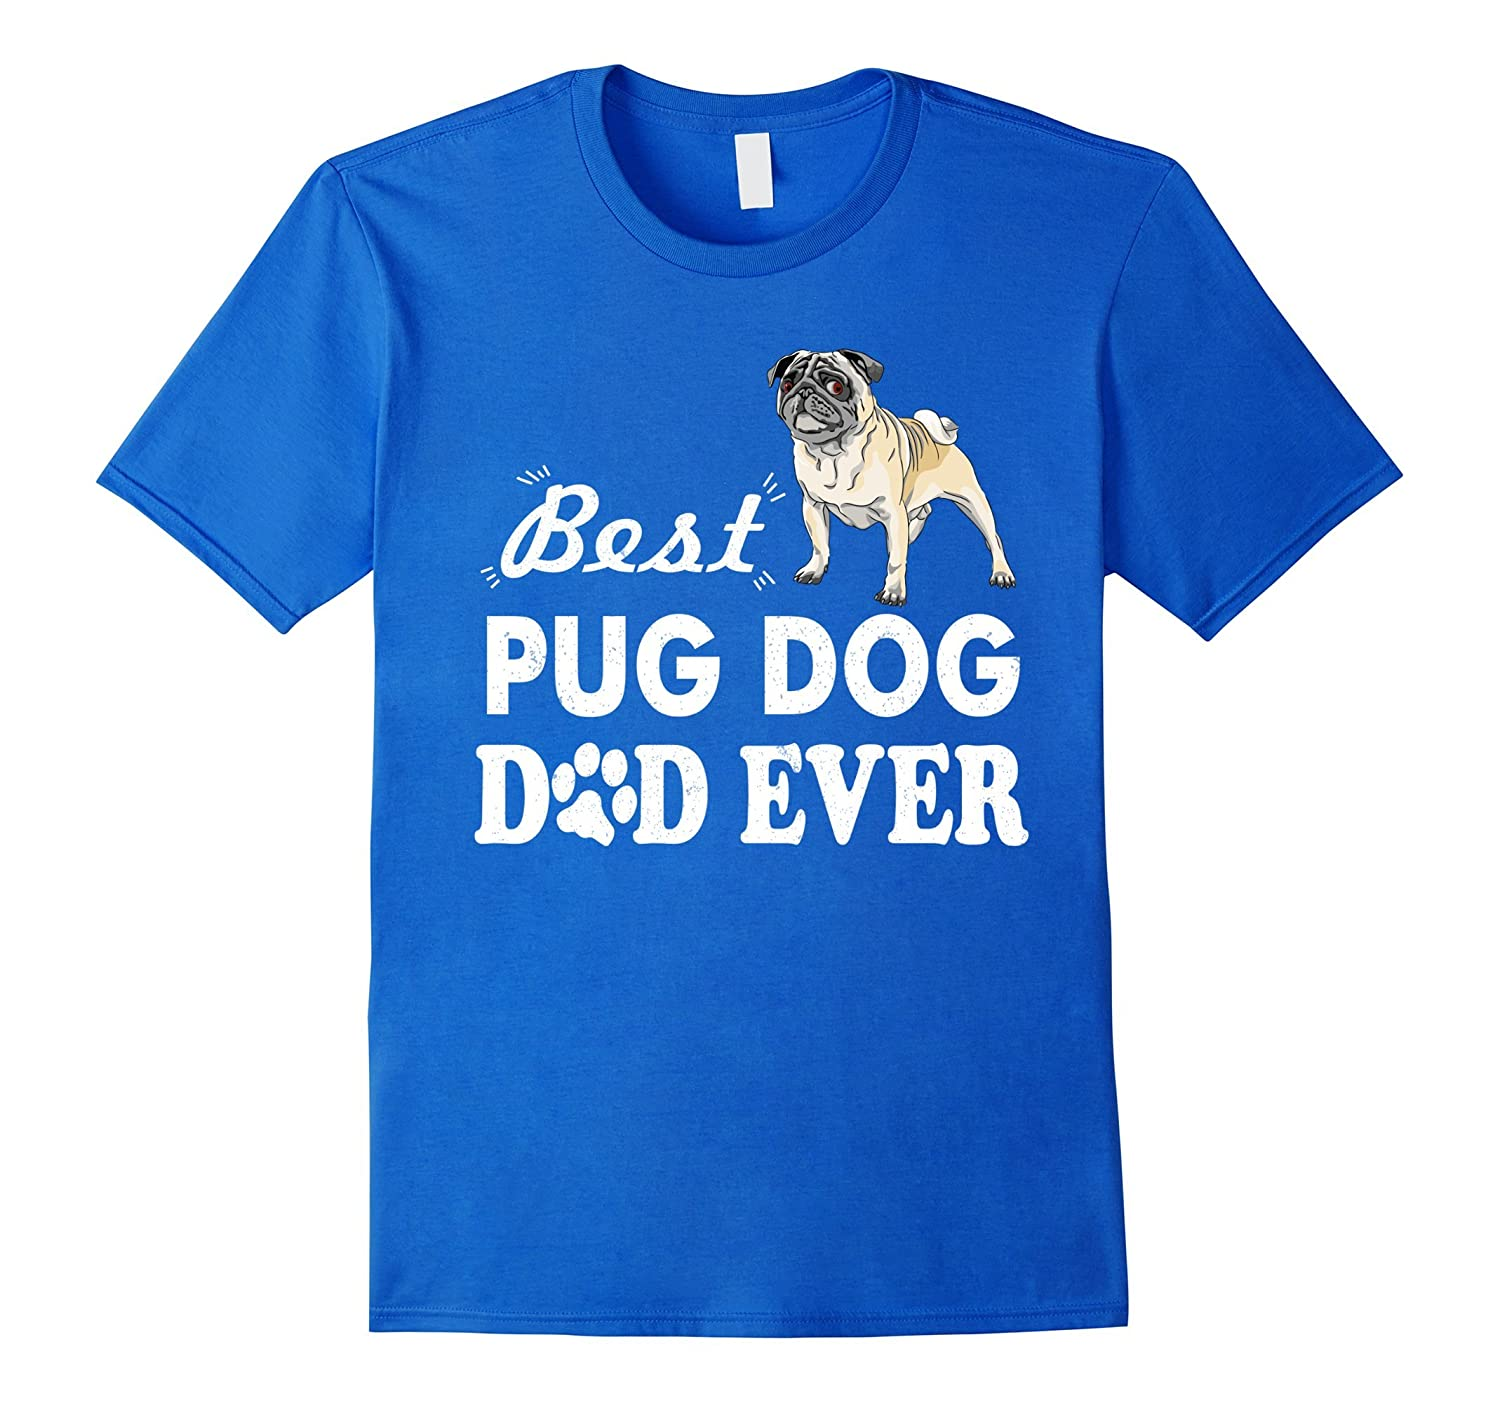 9b369fce6 Best Pug Dog Dad Ever Funny T-Shirt Gift For Father-TH - TEEHELEN